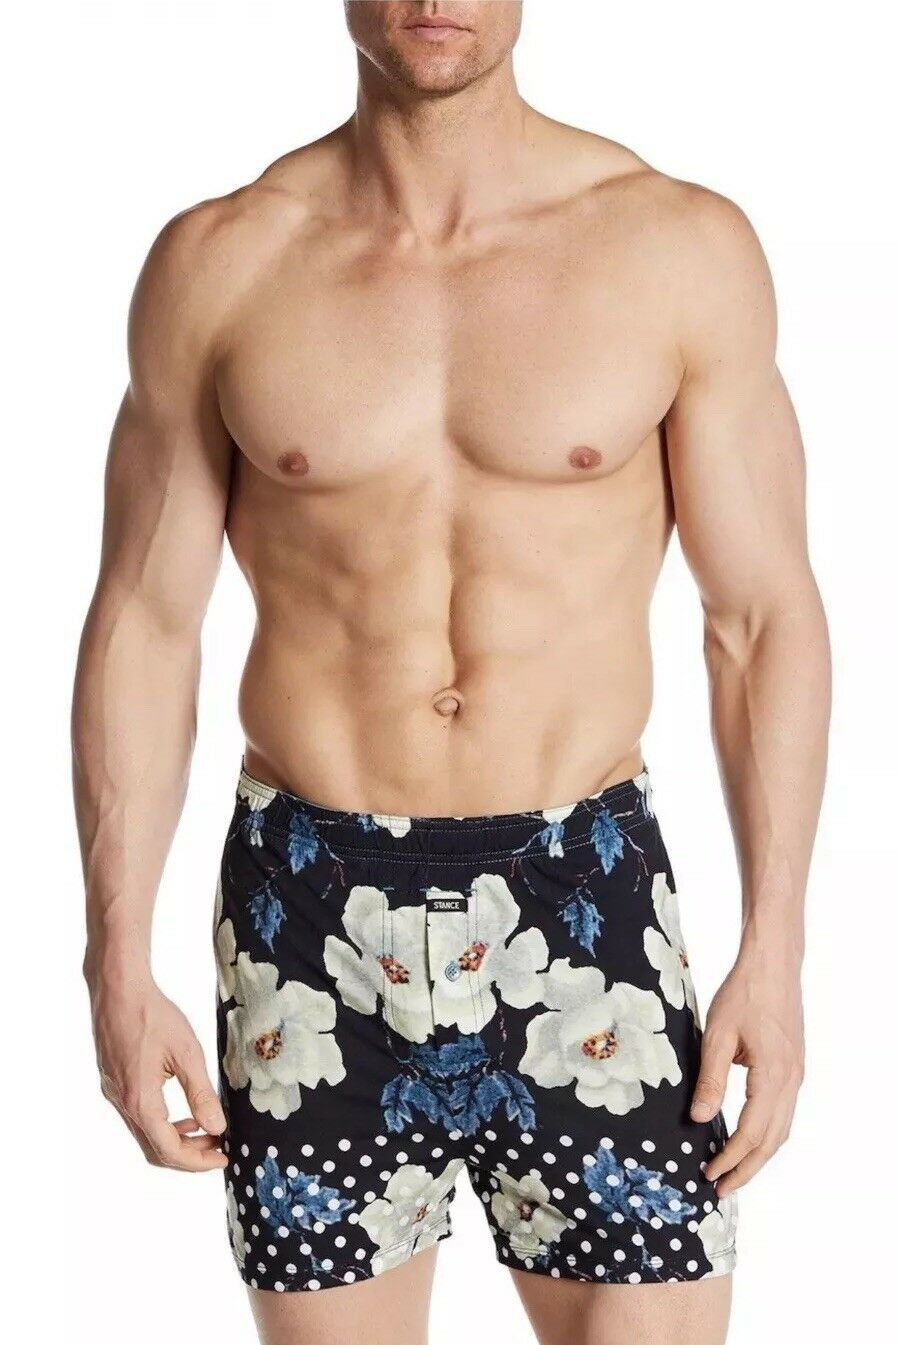 NEW Stance Floral Garden Modal Blend Knit Boxer  - The Mercato - Small